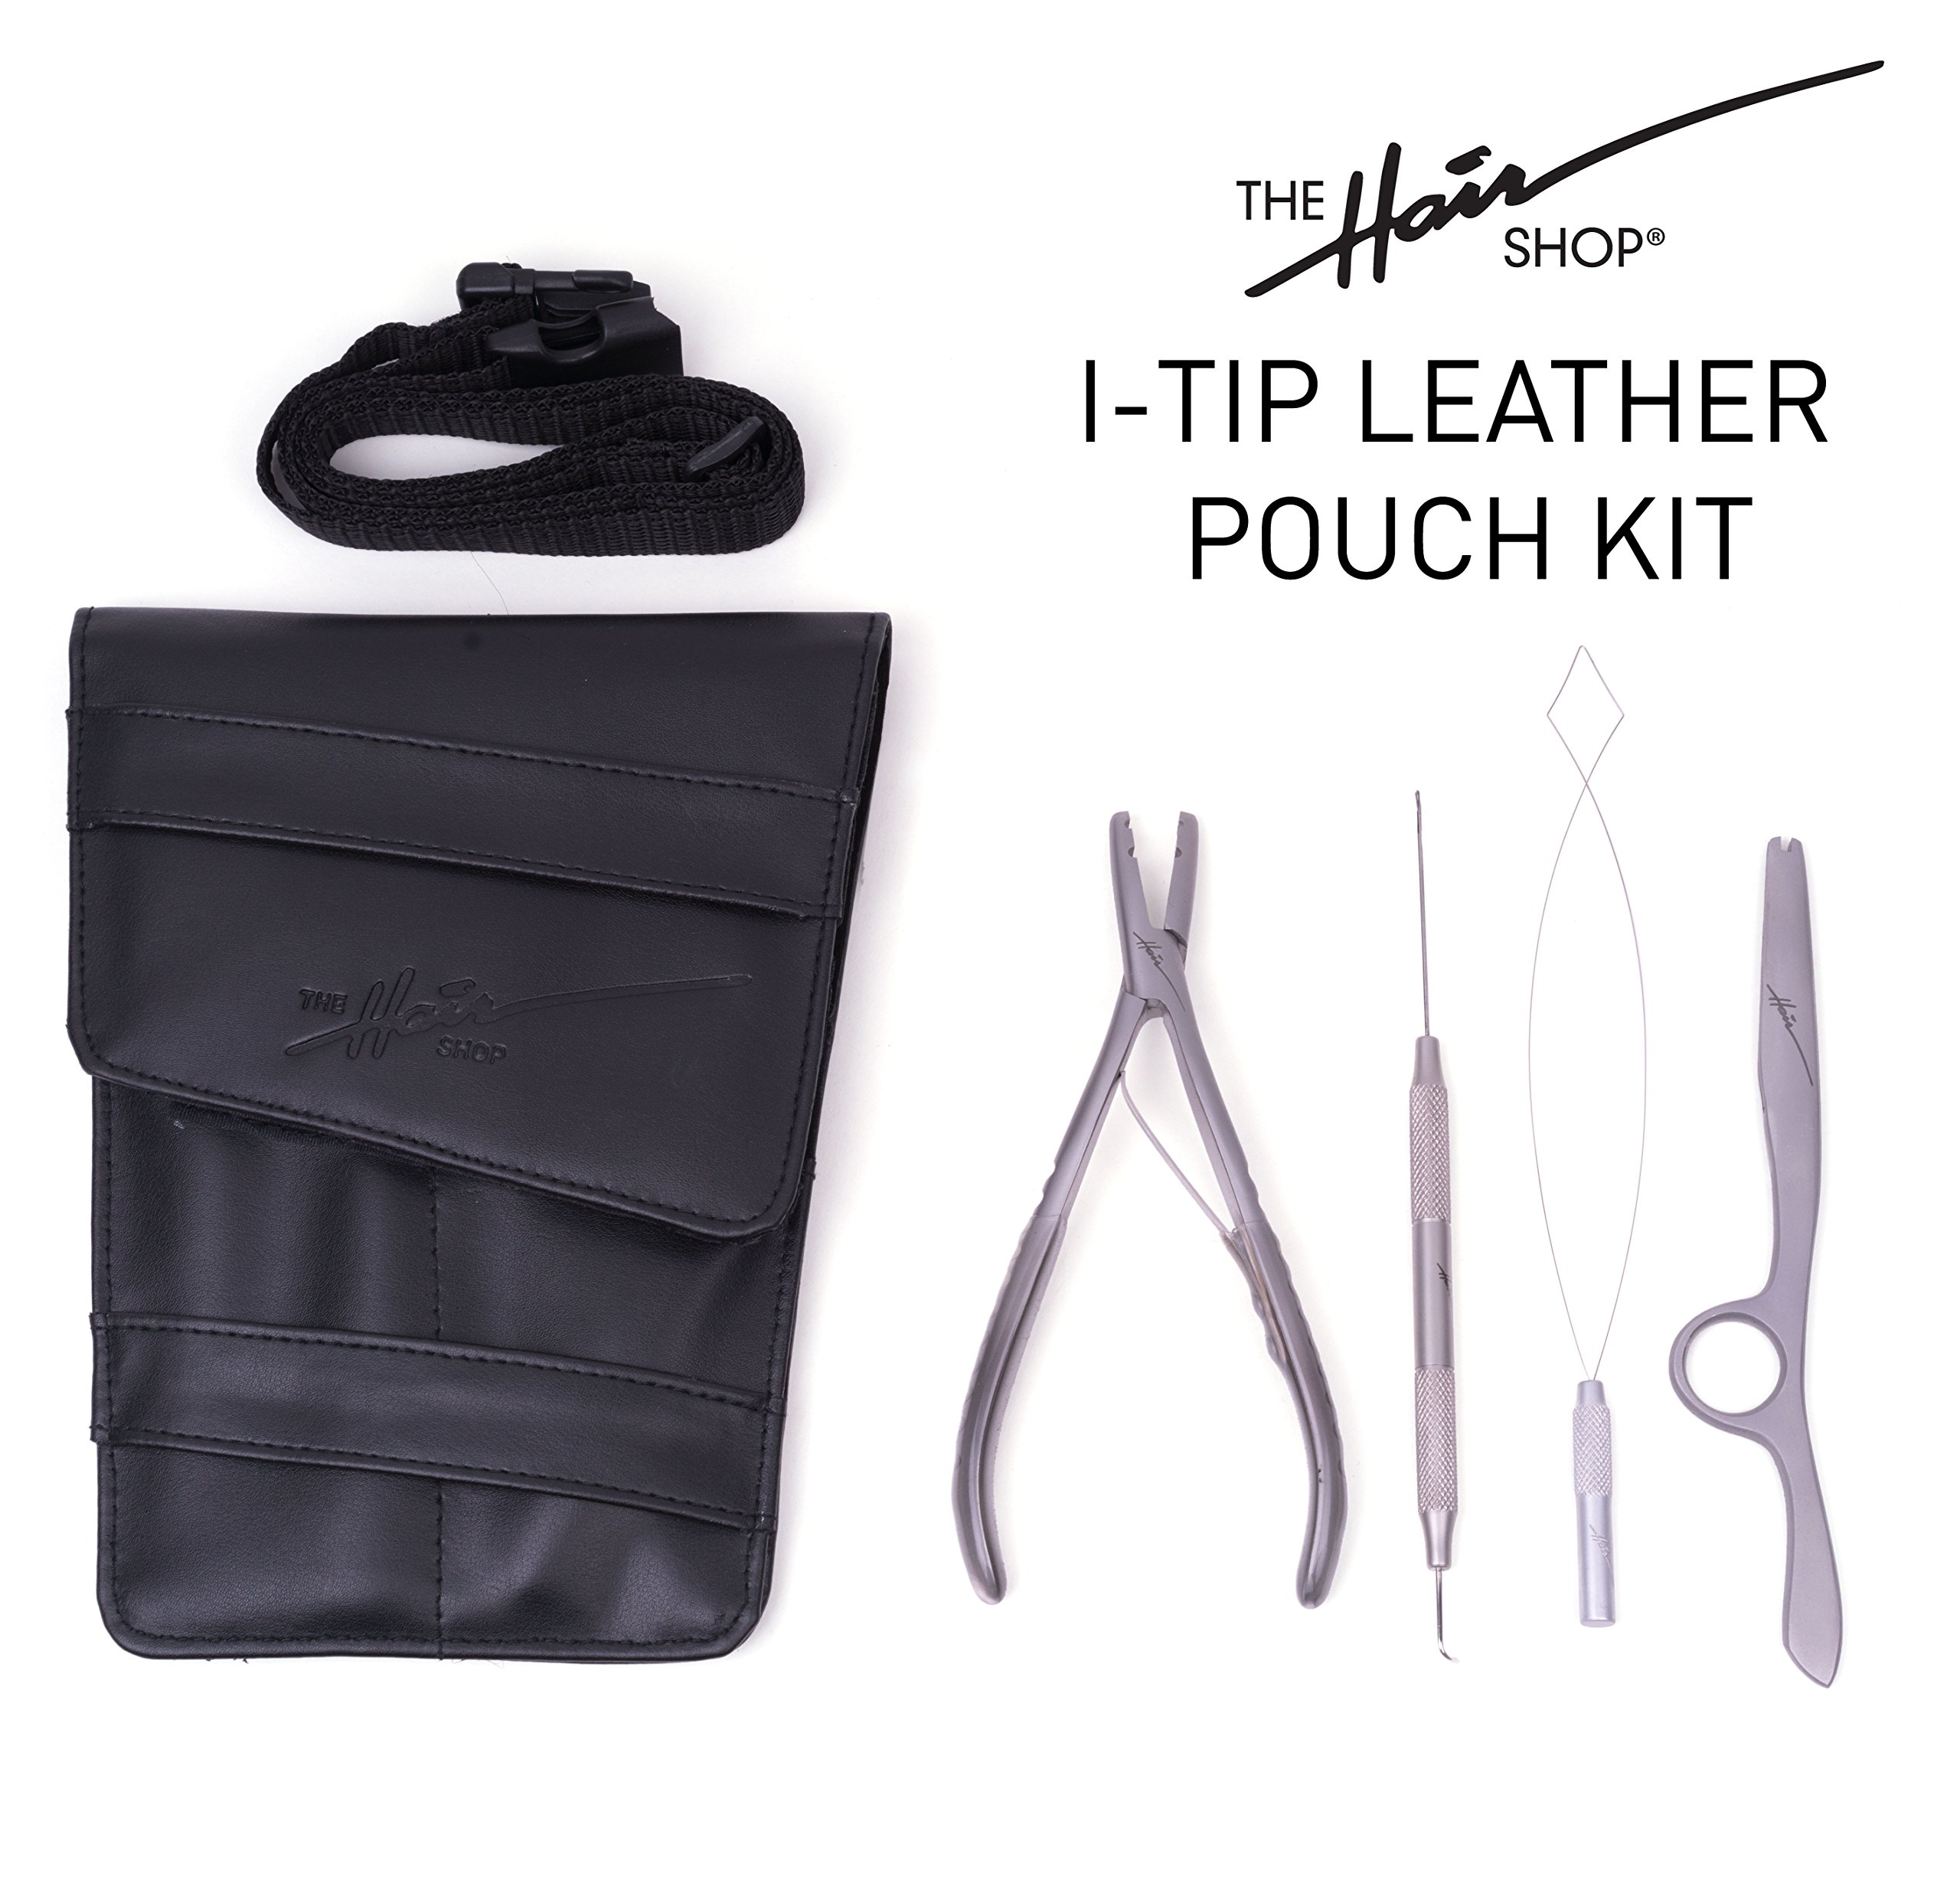 I-Tip Leather Pouch Starter Kit by The Hair Shop - Threading Tool, Multifunction Plier, Blending Razor, and Leather Pouch w /Belt for Professional Hair Extensions by The Hair Shop